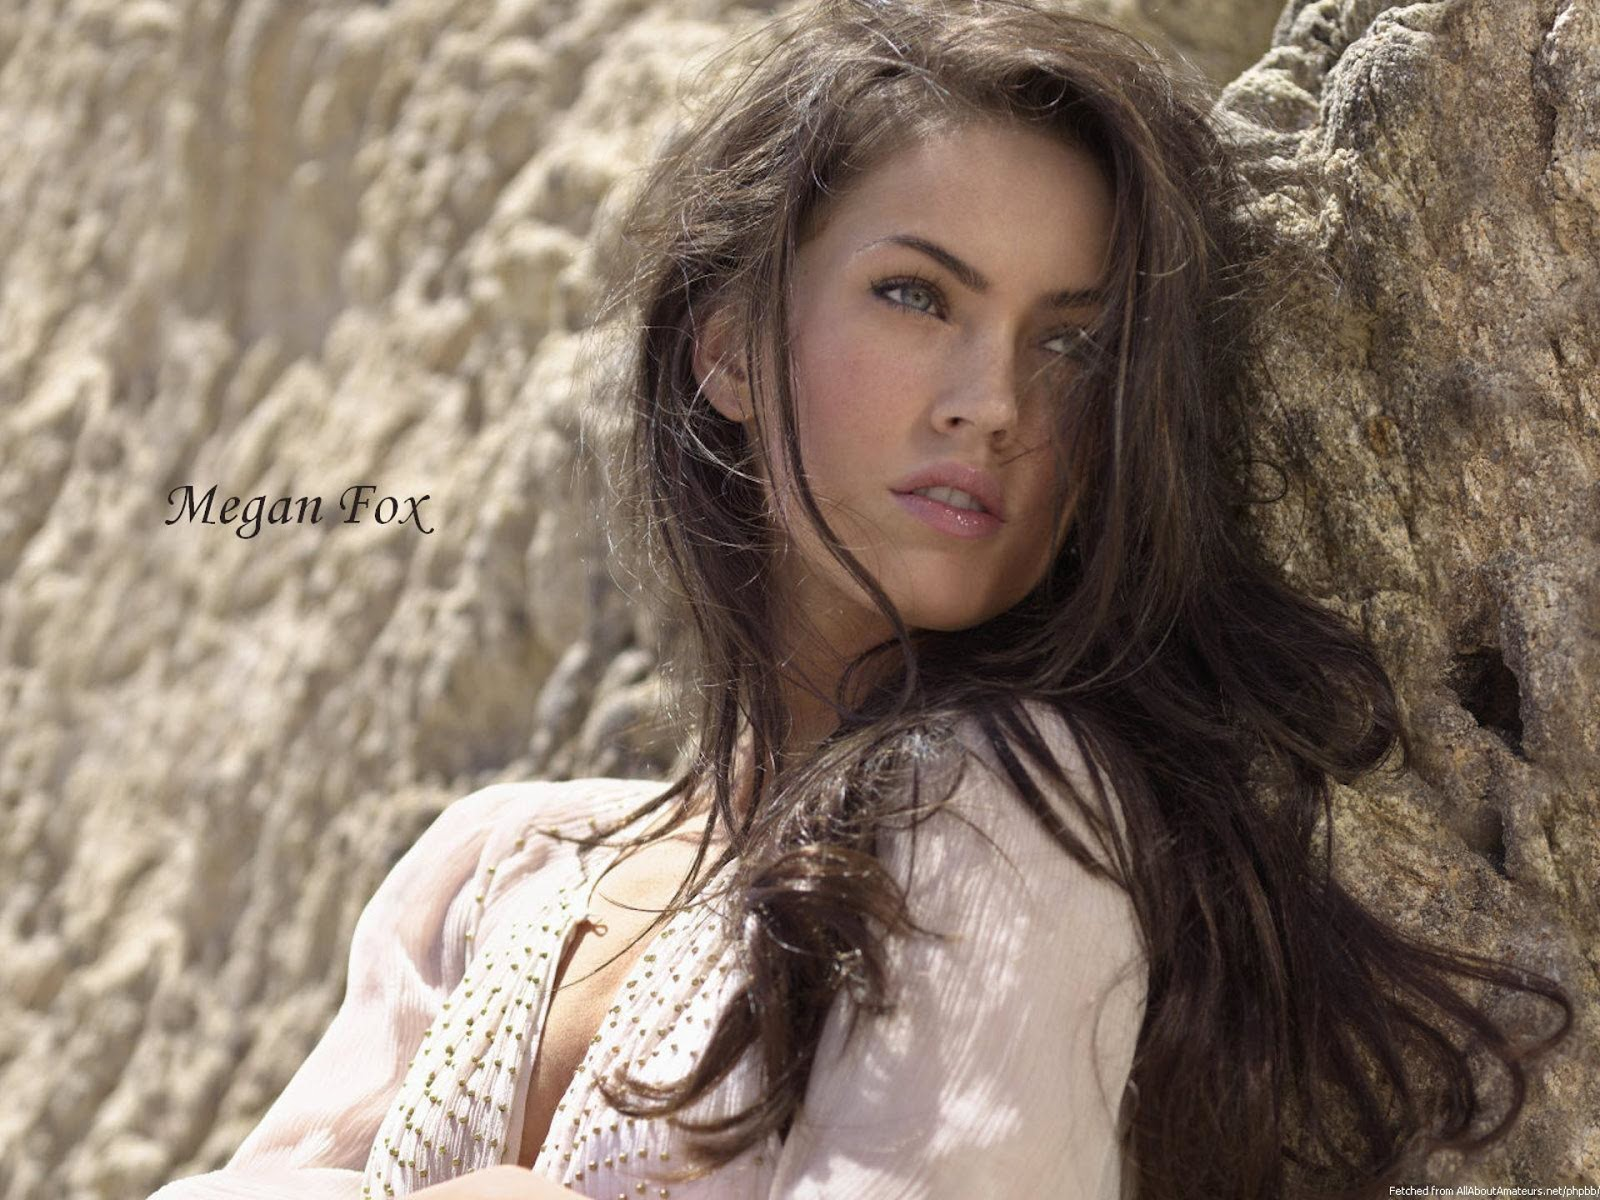 http://4.bp.blogspot.com/-ecA5ZMatWfU/UNV_xI6Q5tI/AAAAAAAApmU/10a8FRdYoUk/s1600/Megan+Fox+-+Hot+HD+Wallpapers+0004.jpg